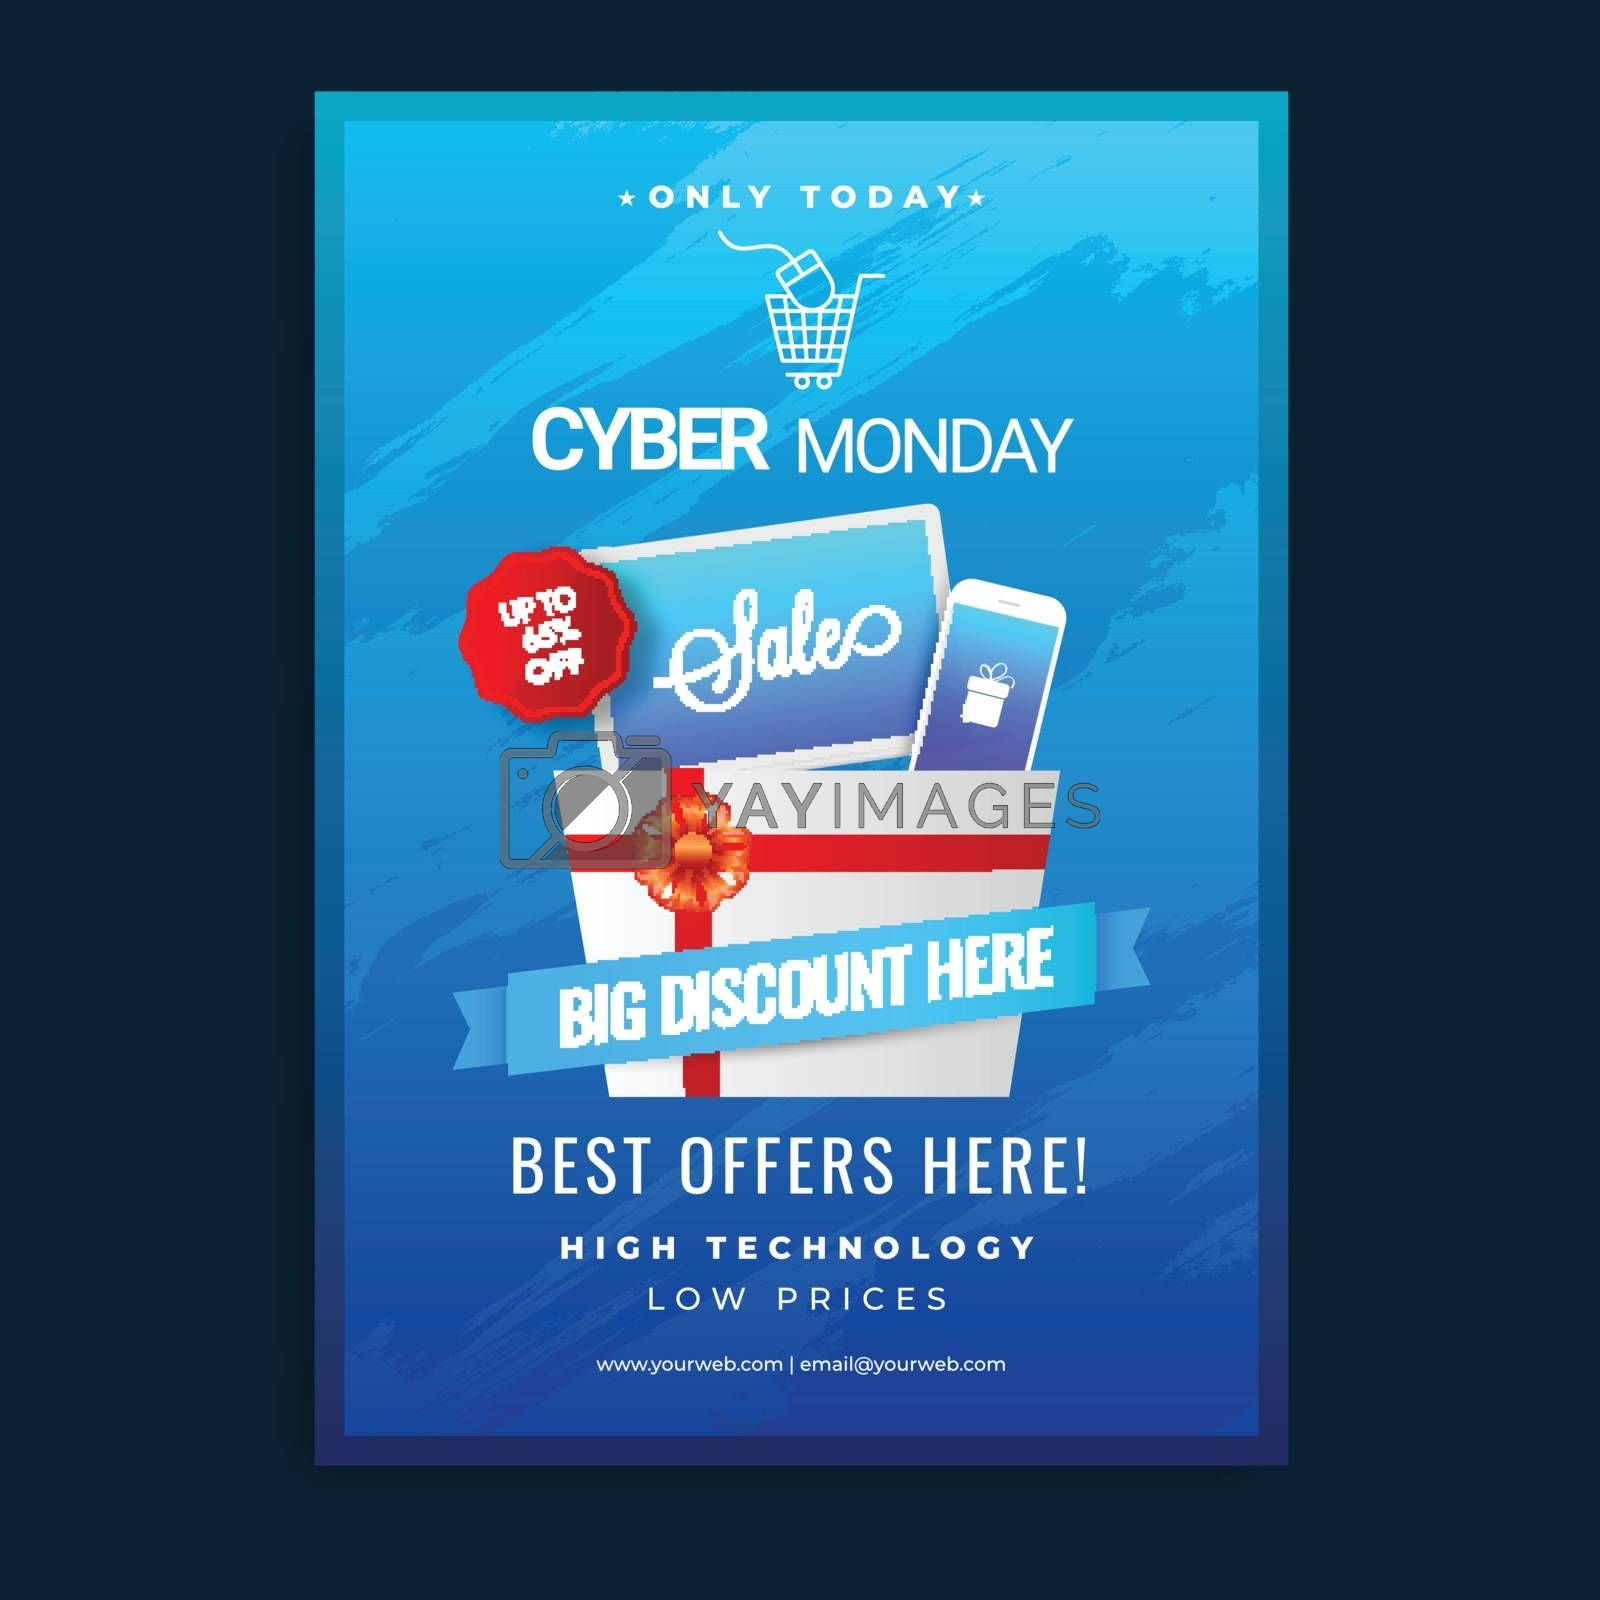 Cyber Monday sale template or flyer design with 65% discount offer on blue background.